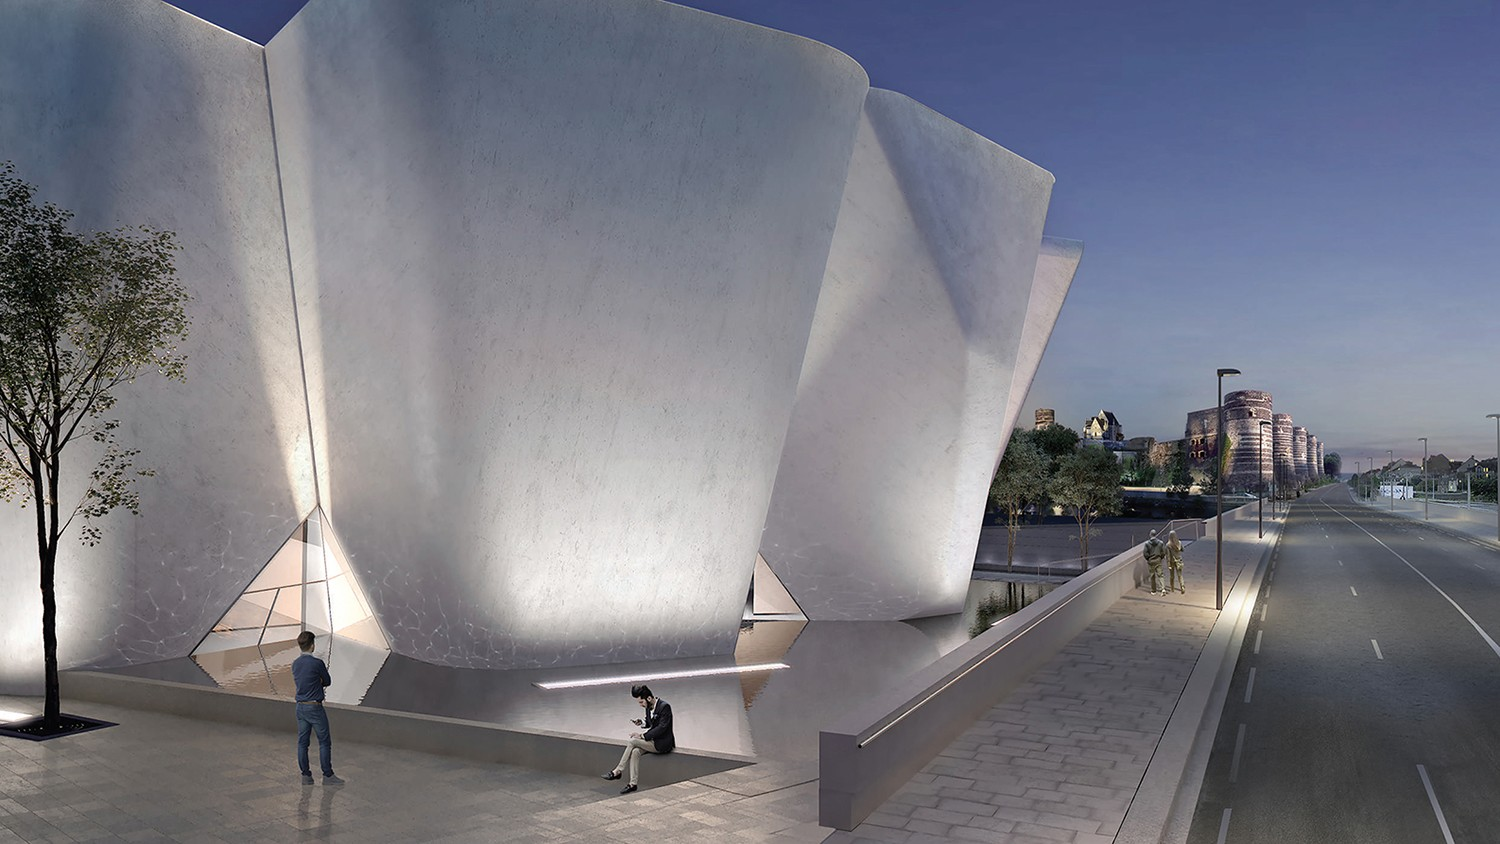 https://s3.us-east-2.amazonaws.com/steven-holl/uploads/projects/project-images/SHA_Angers_MuseumNightView_WH.jpg